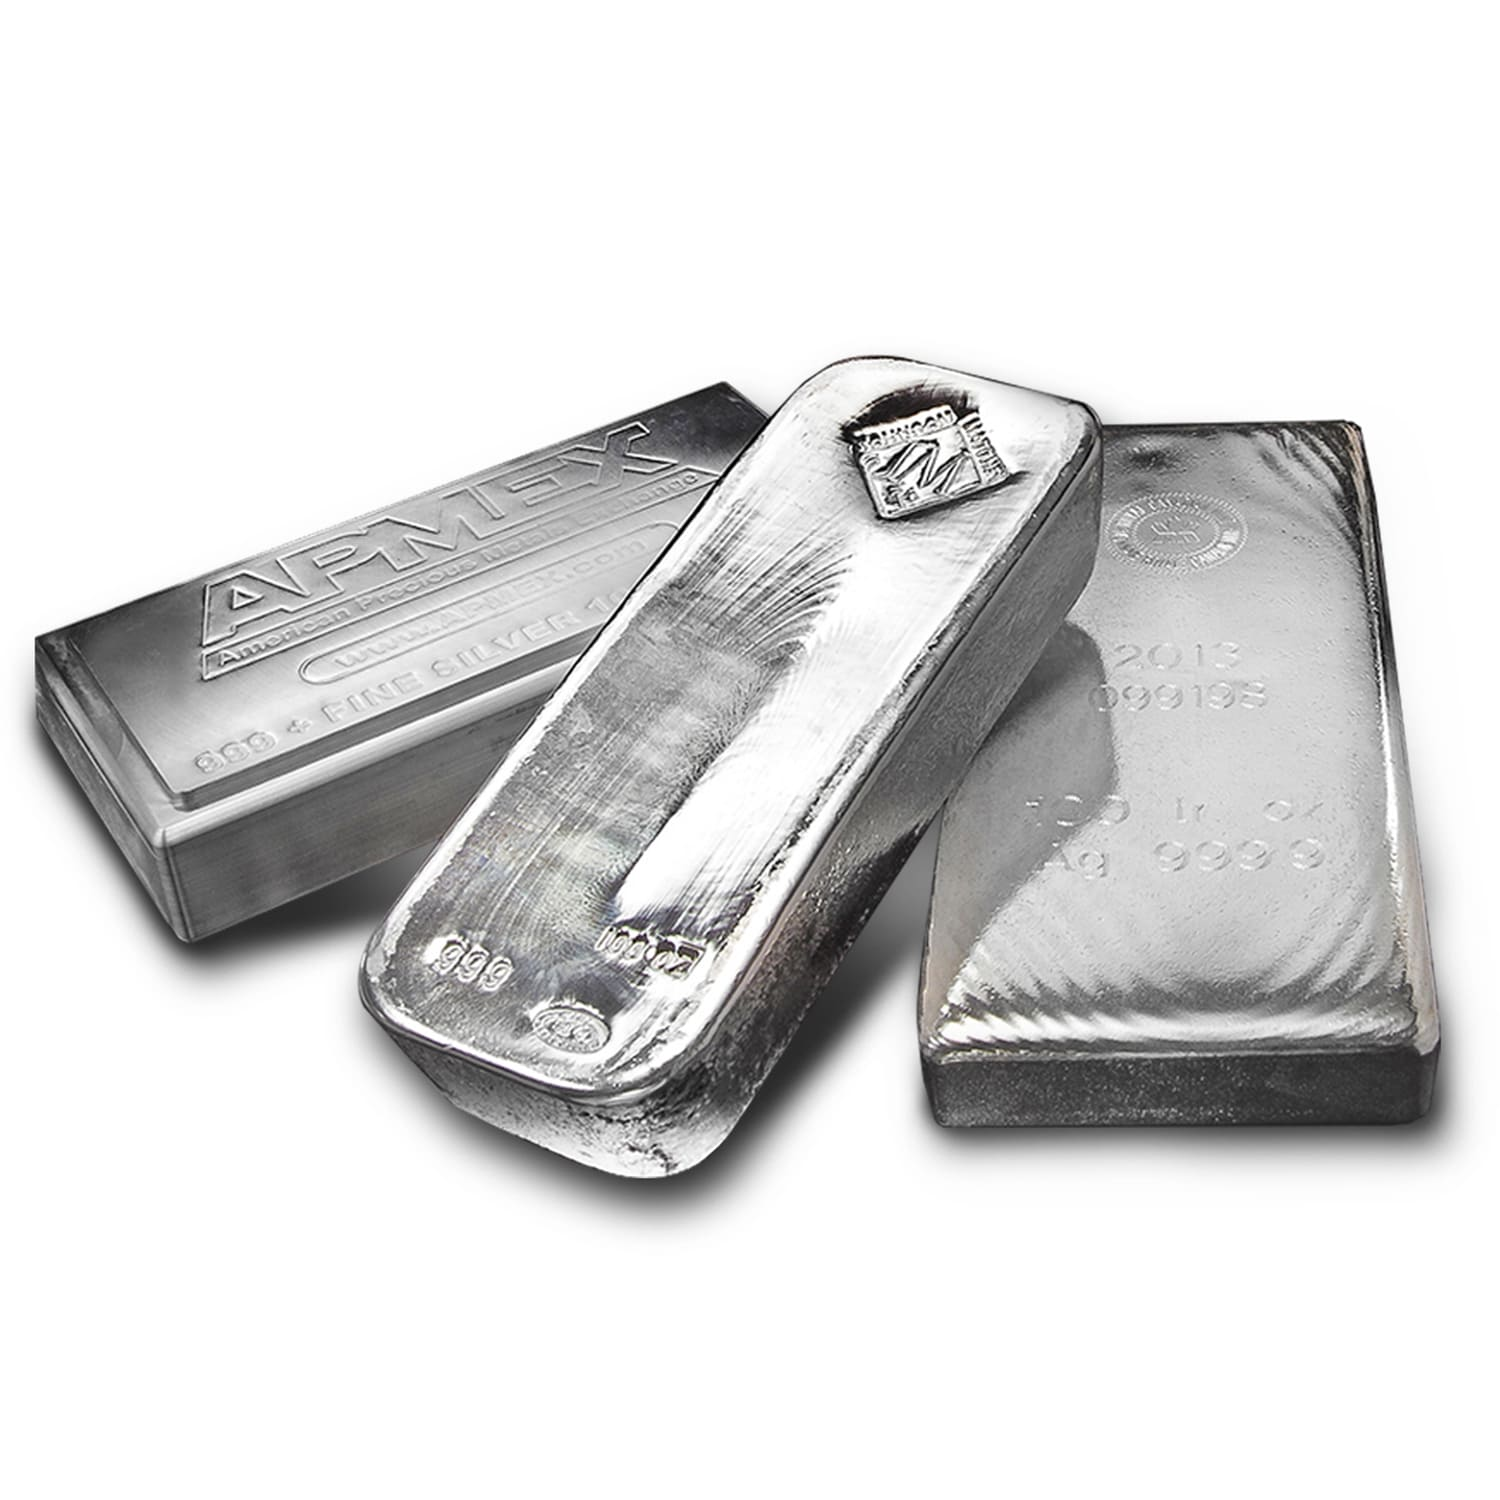 102.60 oz Silver Bar - Secondary Market